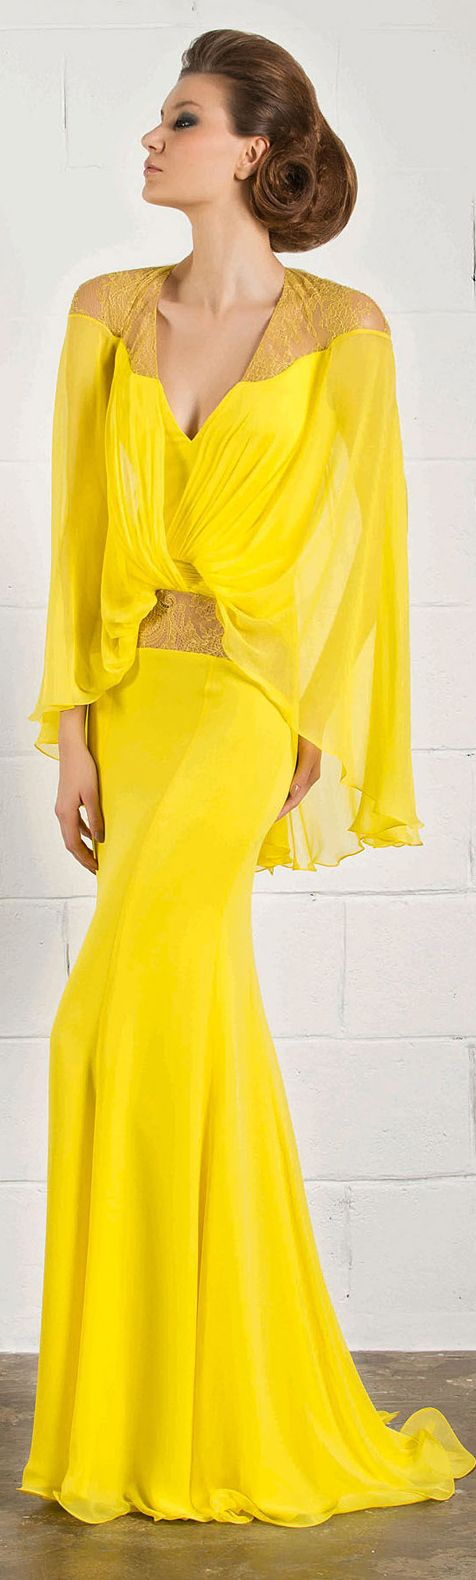 RANI ZAKHEM #yellow #dress